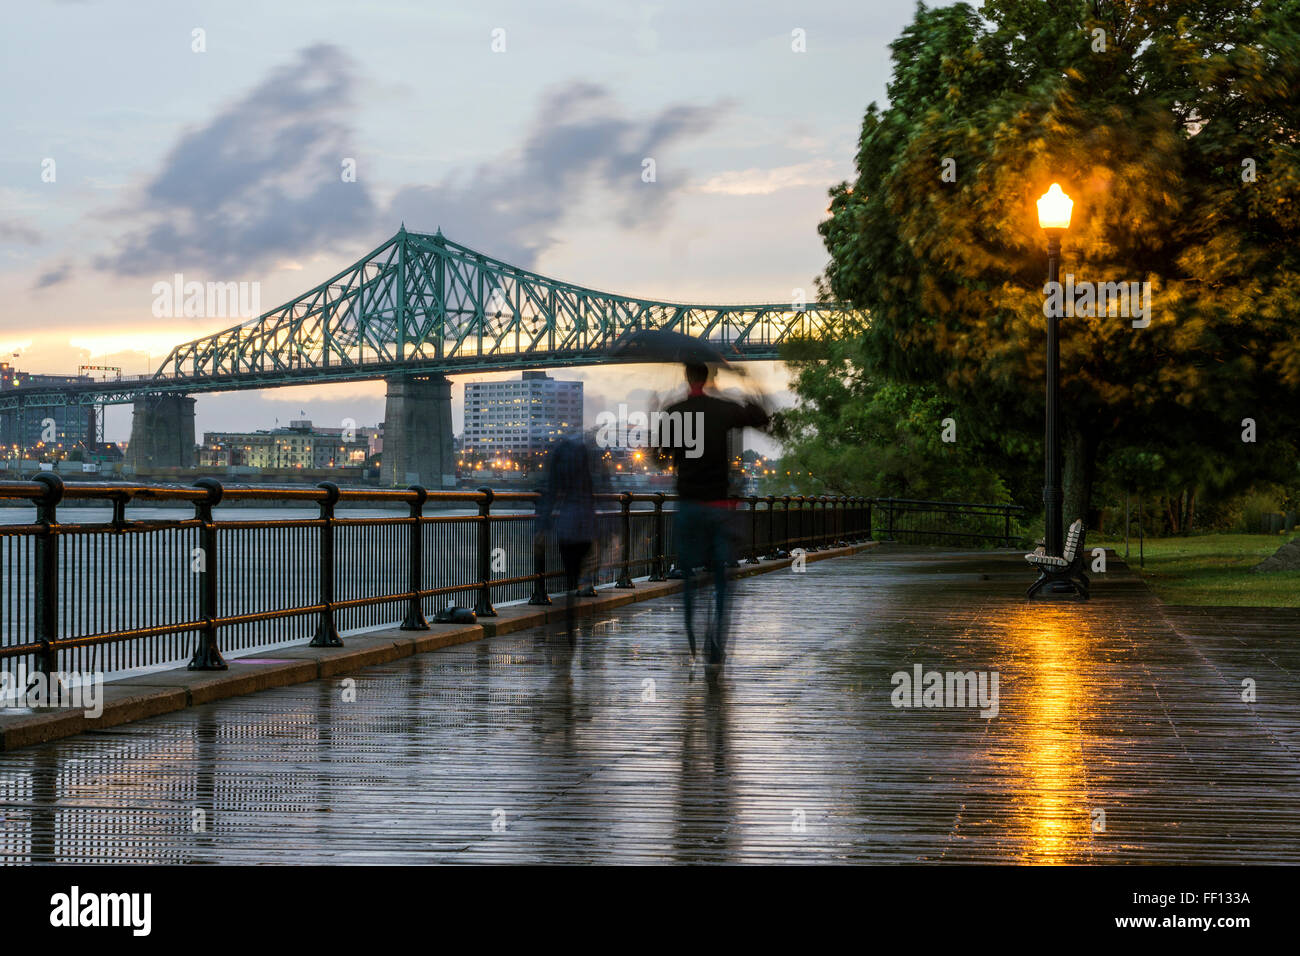 Blurred view of people on Montreal waterfront, Quebec, Canada - Stock Image